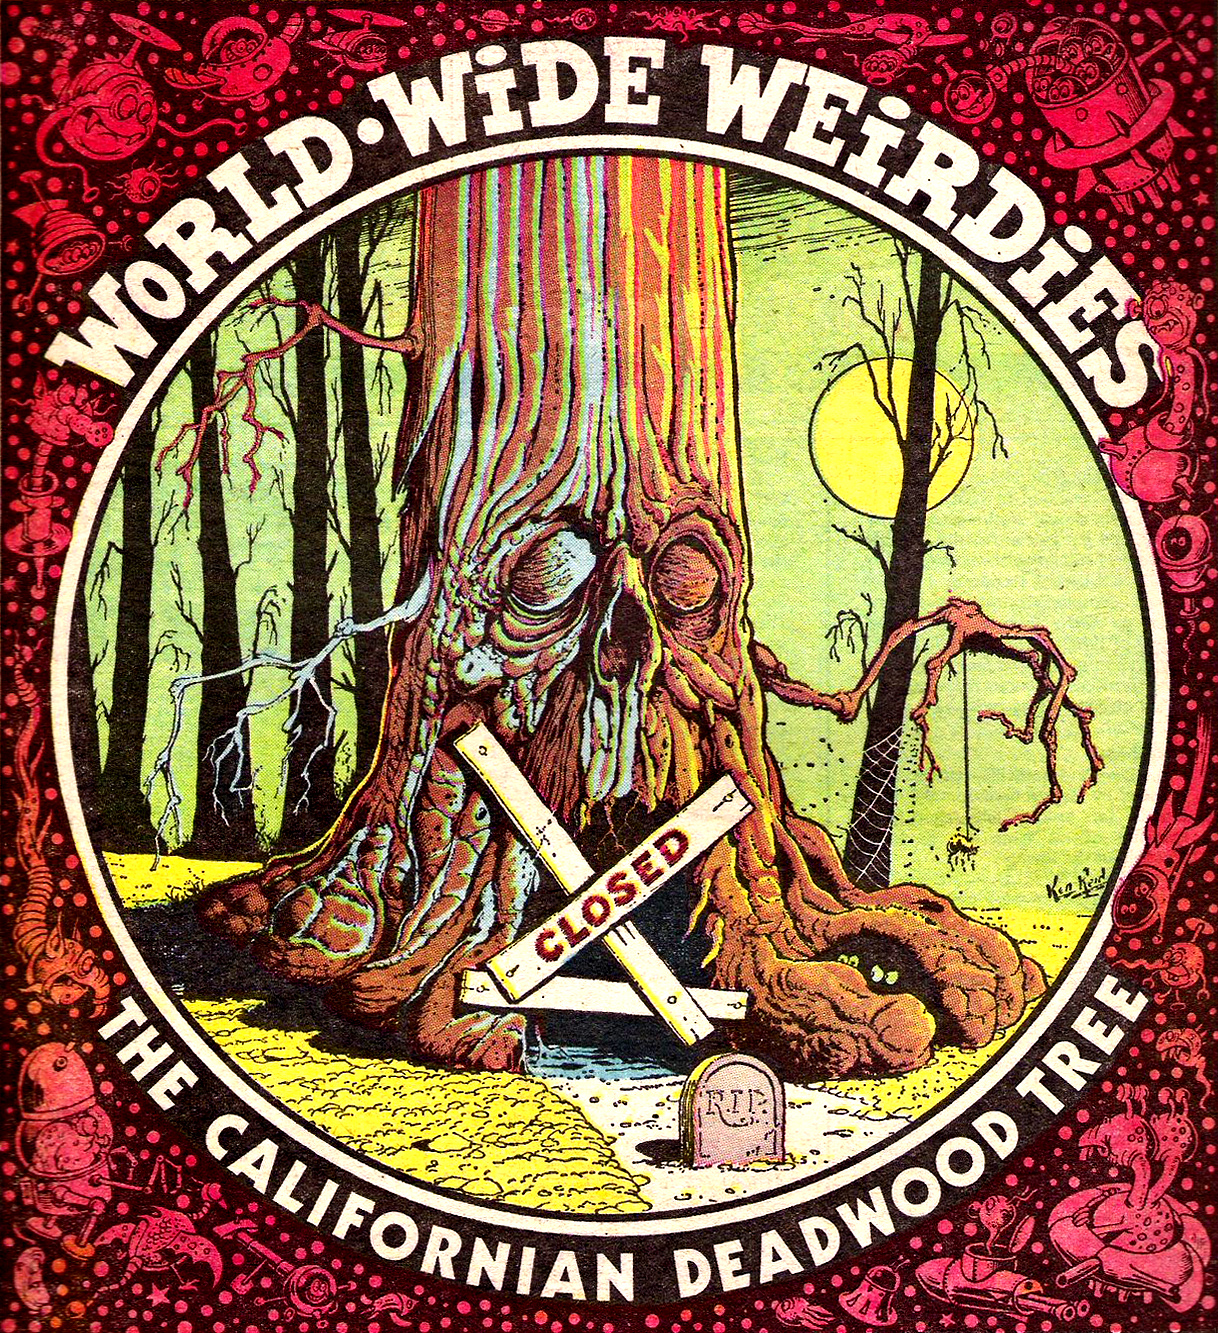 Ken Reid - World Wide Weirdies 10